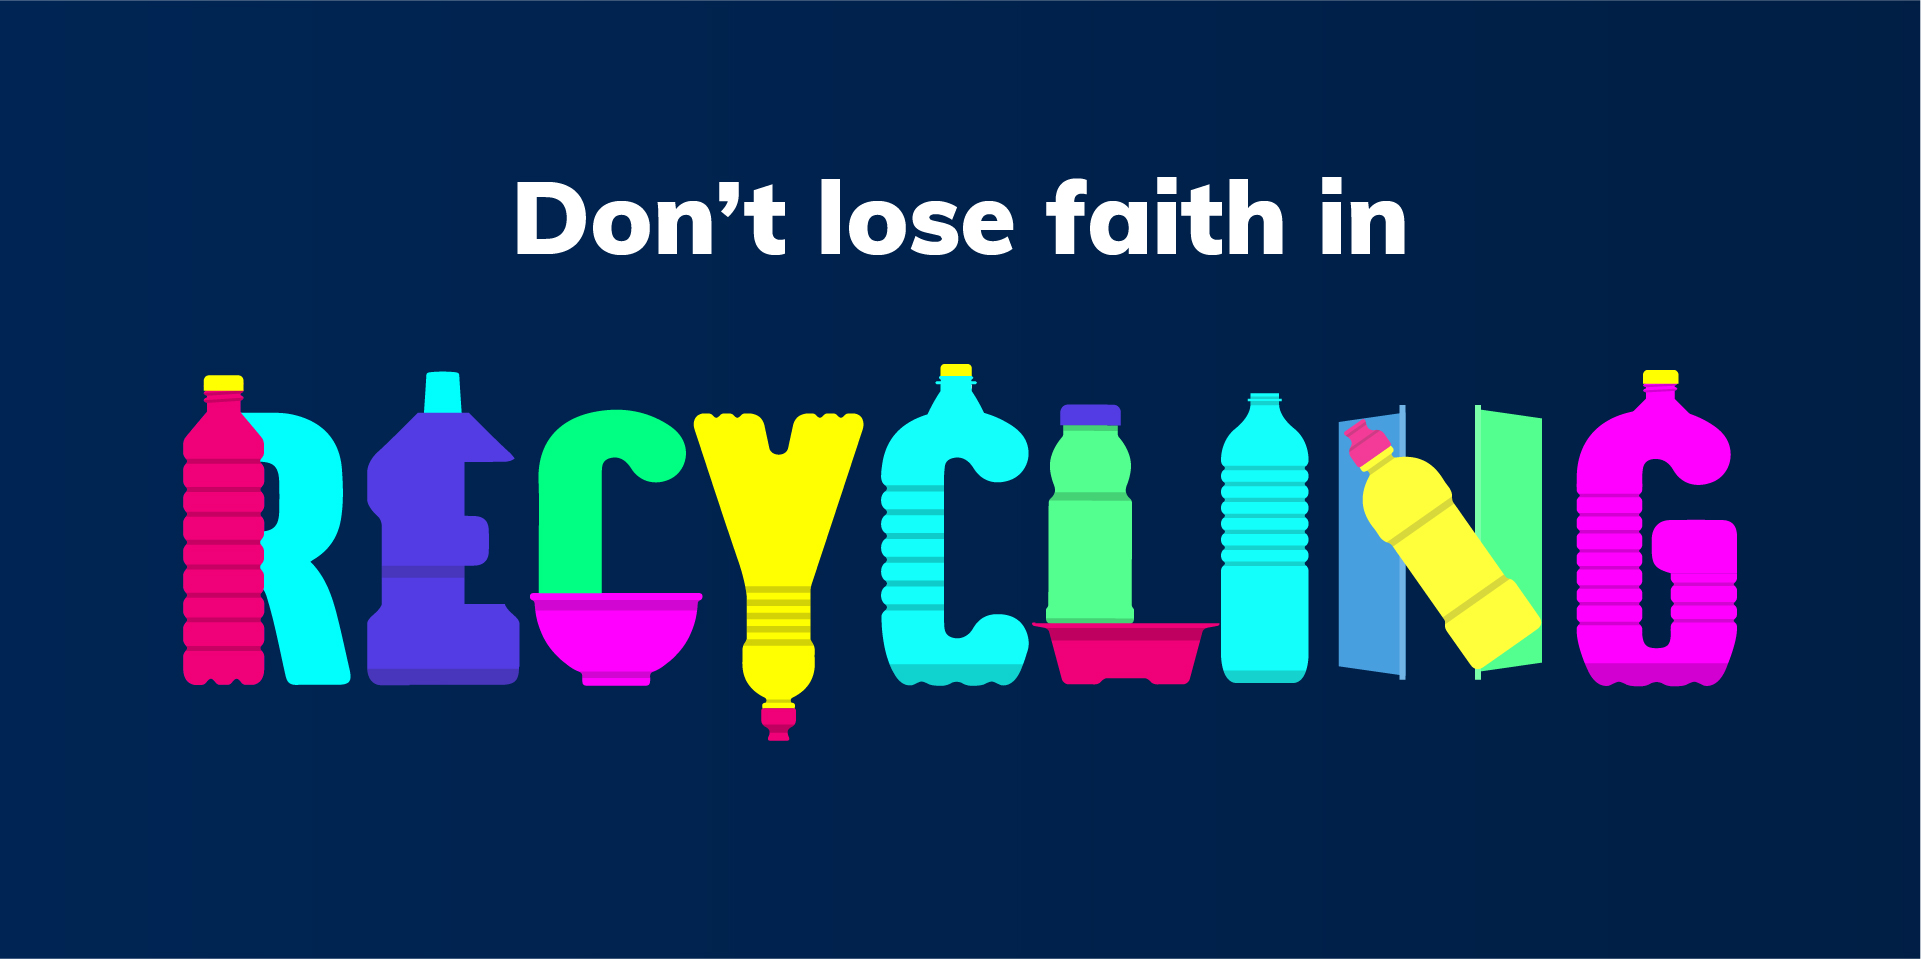 recycled plastic bottles forming the word 'recycling'